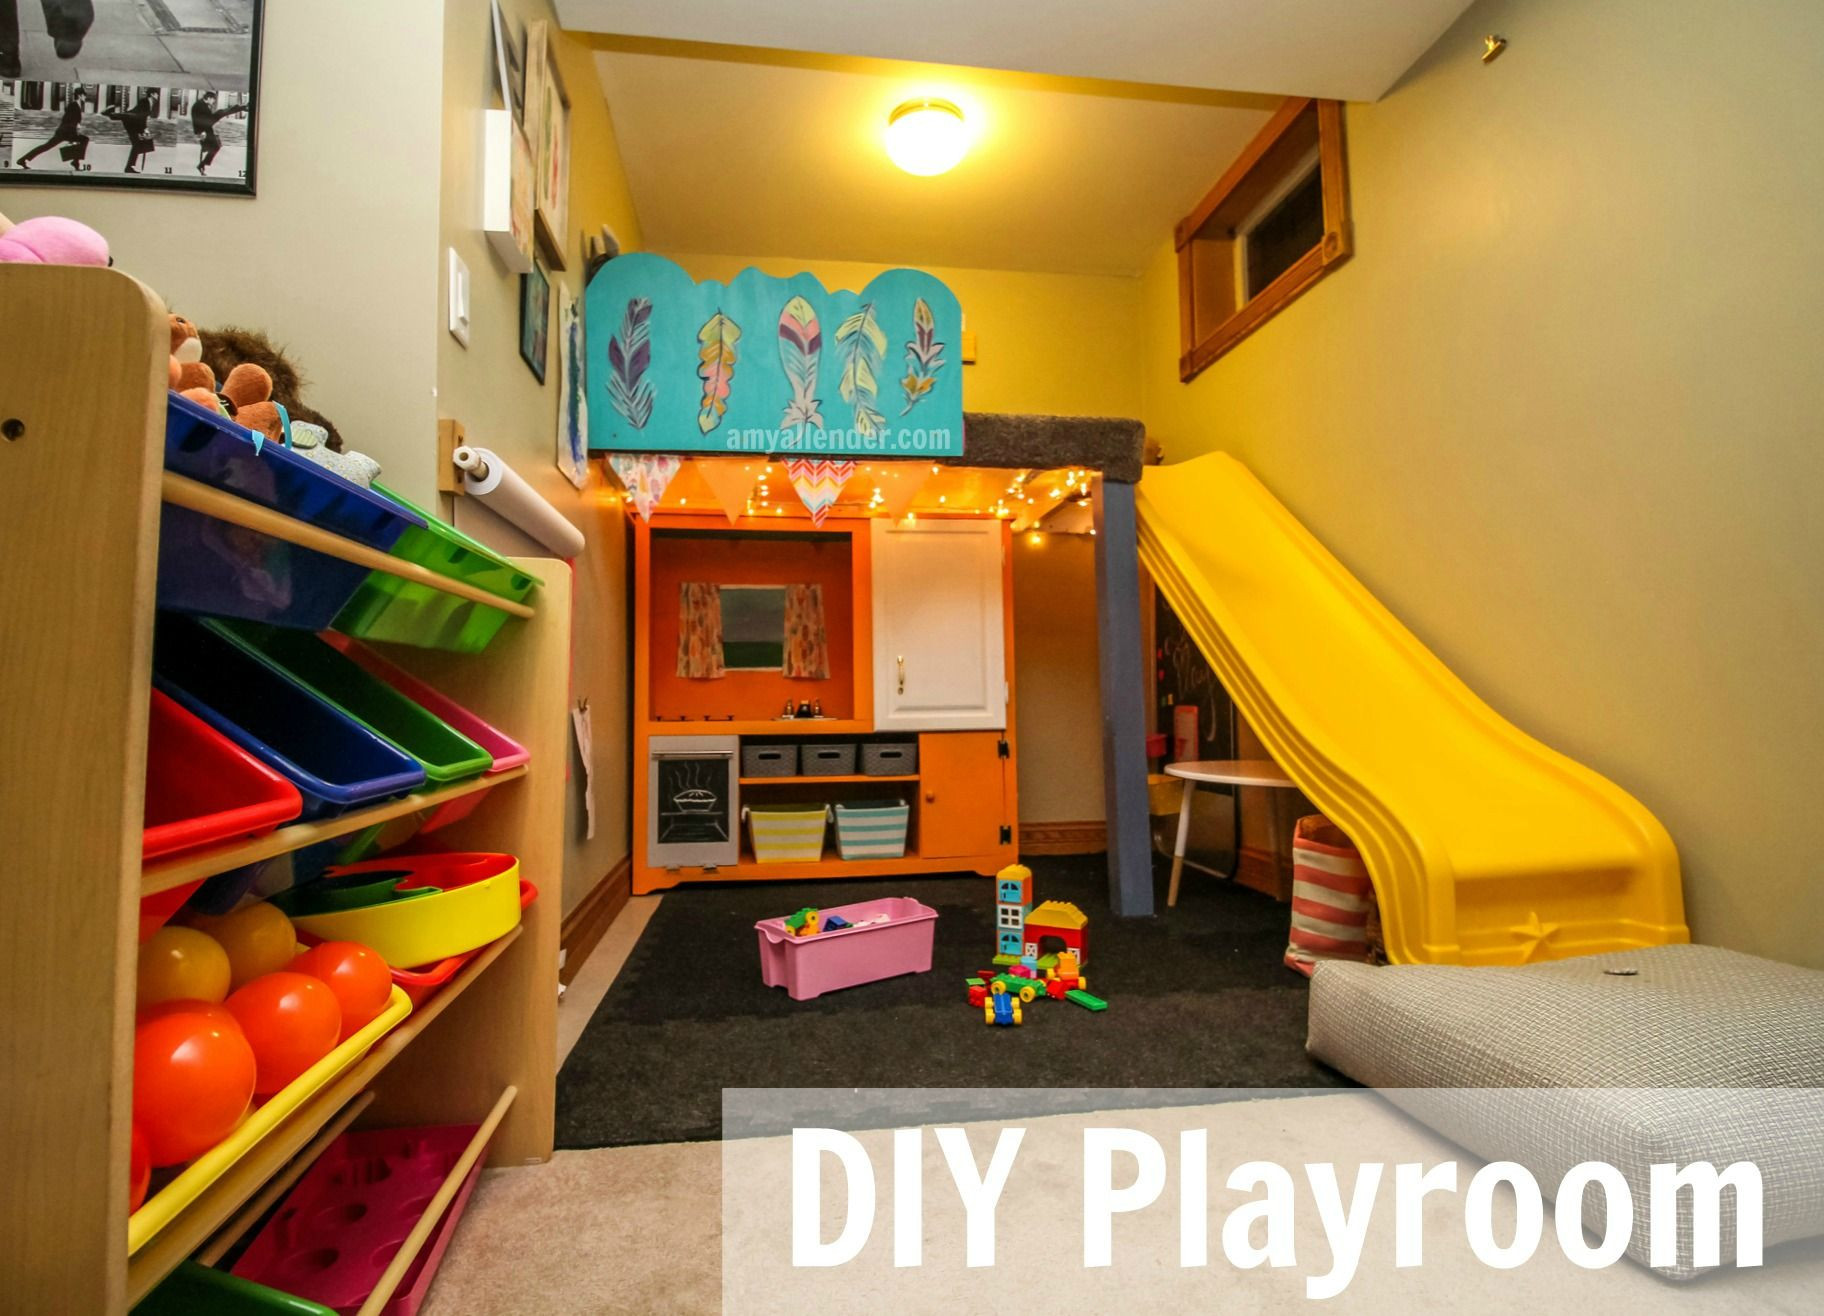 Best ideas about DIY Kids Playrooms . Save or Pin Turn a small space into a fun organized playroom with Now.